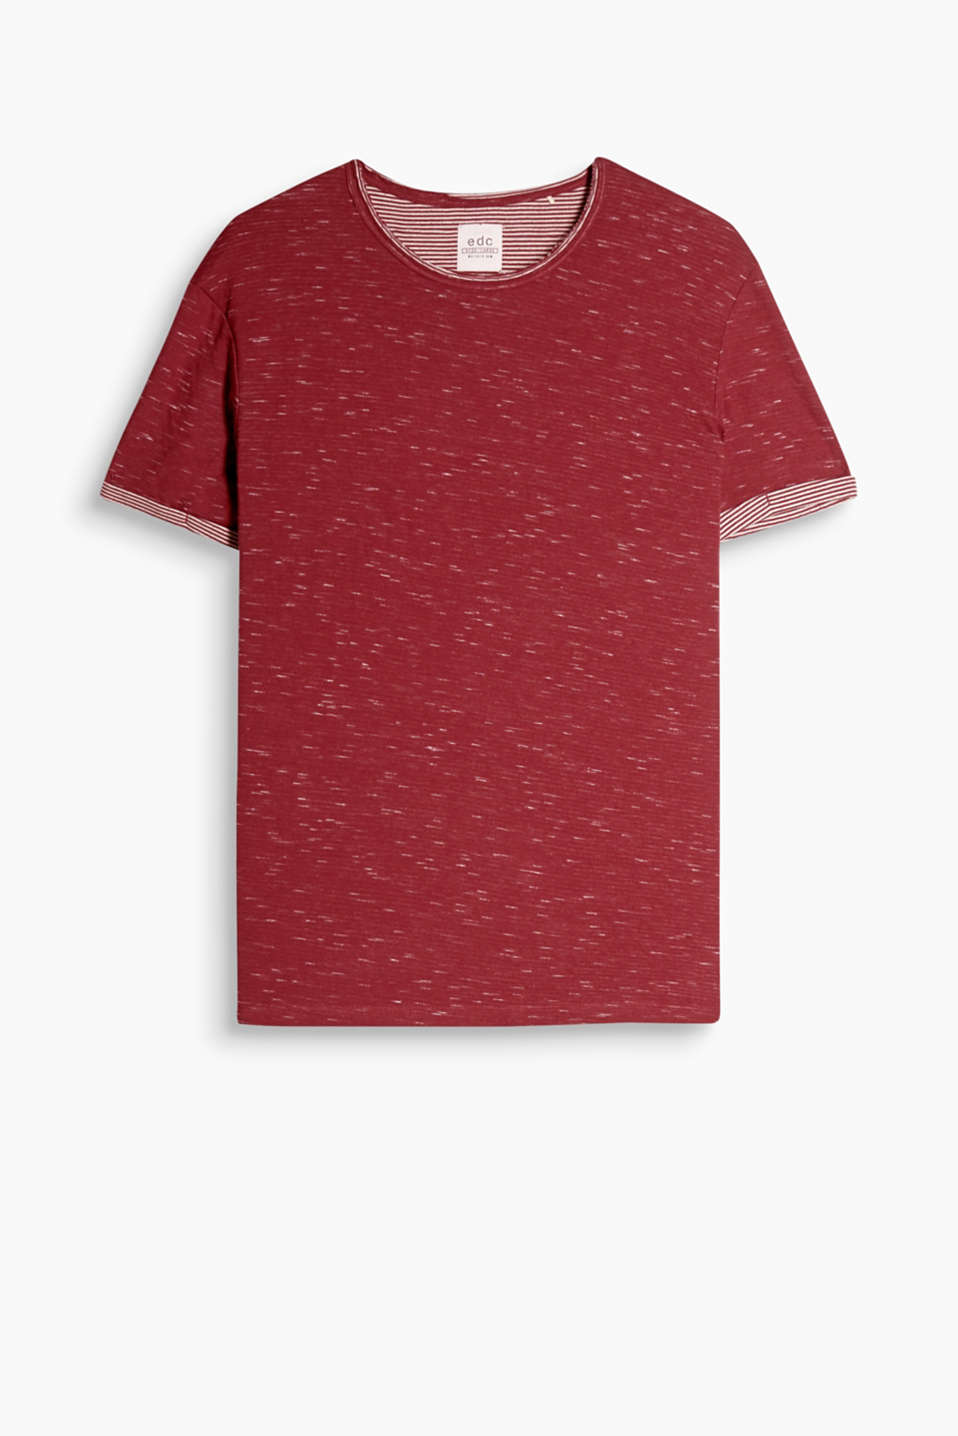 T-shirt with a round neckline and turned-up sleeve ends made of double-faced cotton, with a striped reverse side